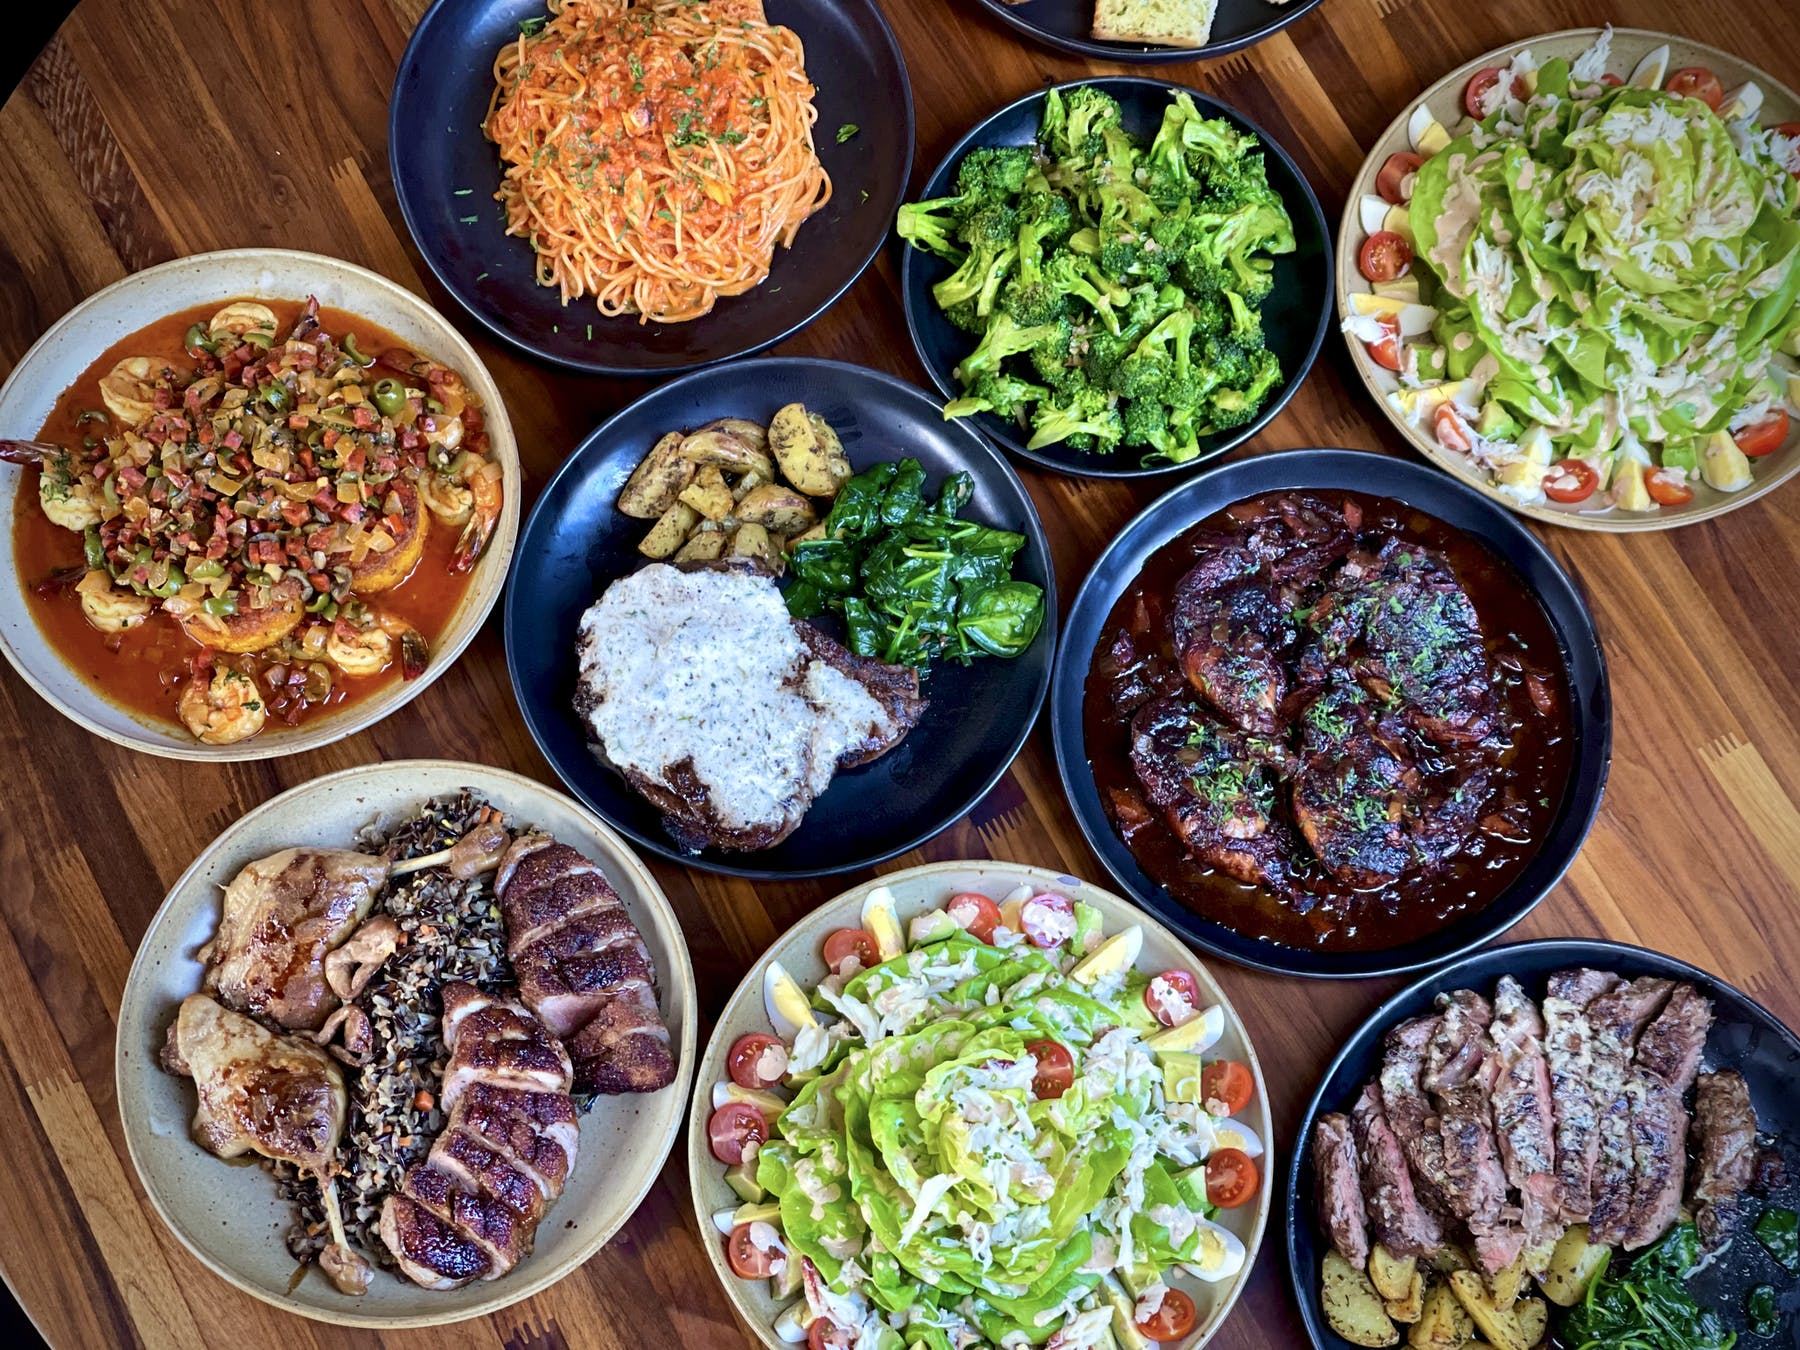 many different types of food on a wooden table